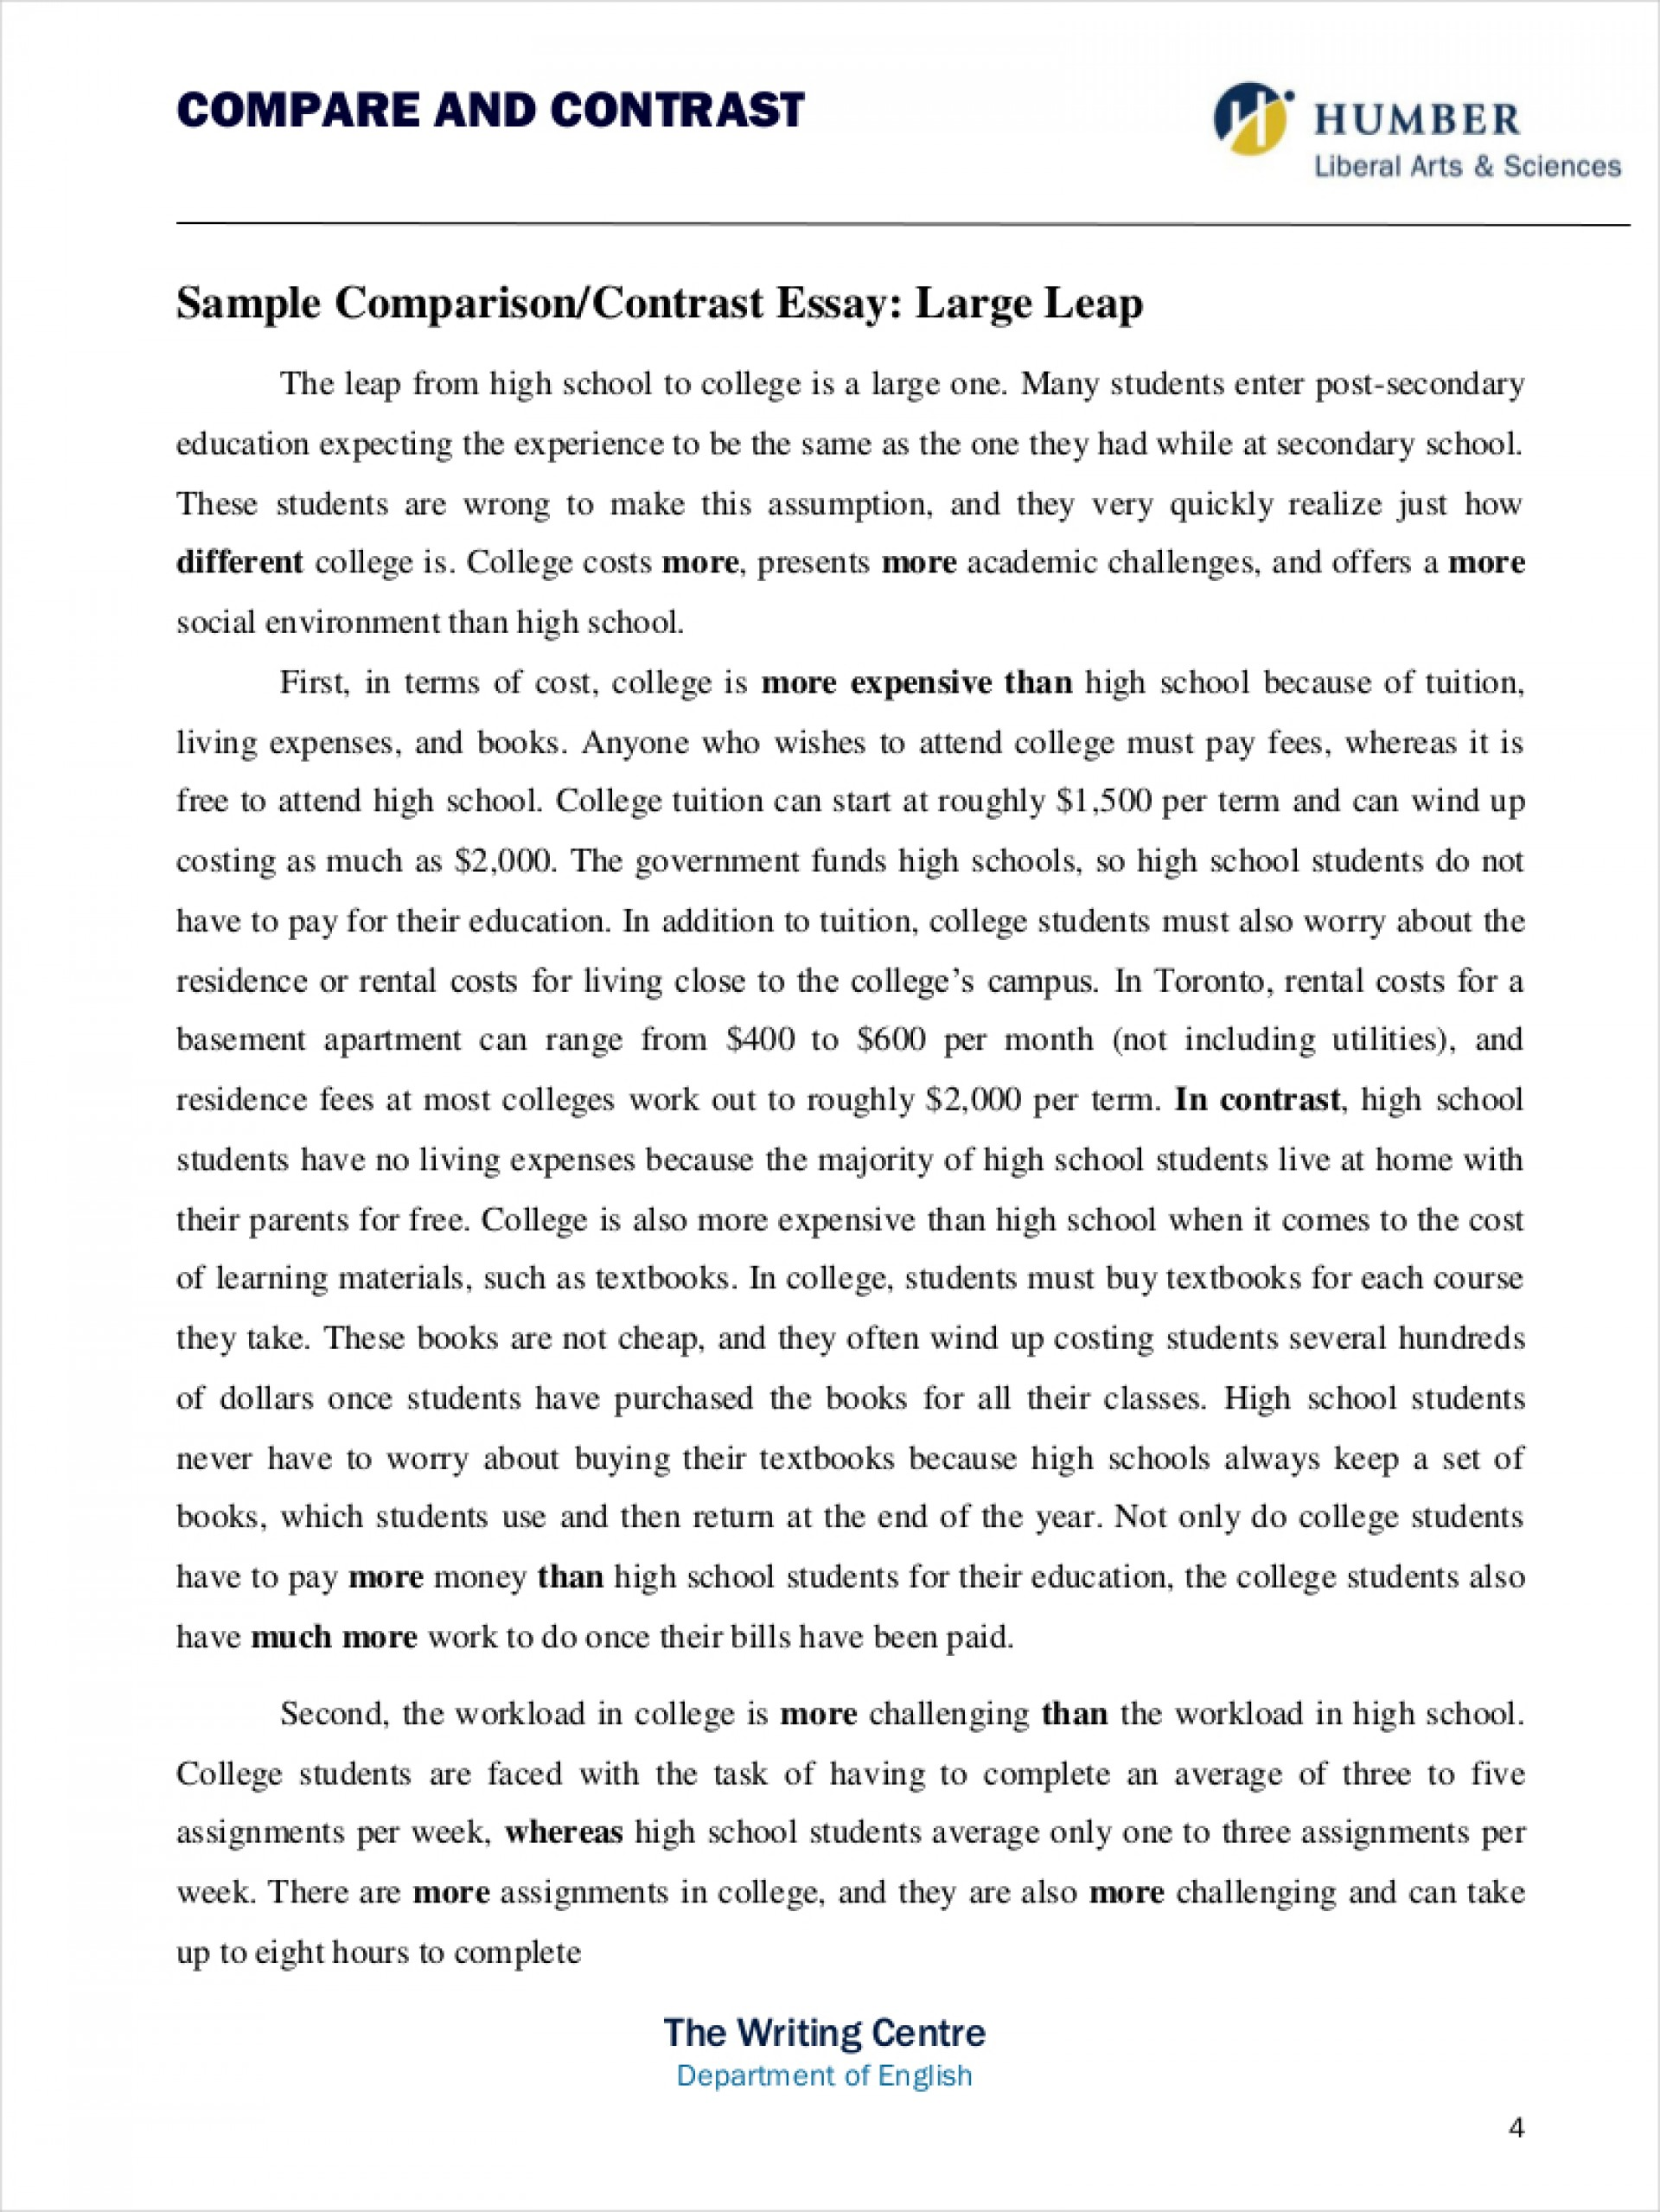 006 Compare And Contrast Essay Examples Comparative Samples Free Pdf Format Download Throughout Comparison Thesis Coles Thecolossus Co Within Ex 5th Grade 4th 6th 3rd Magnificent For Elementary Students College Level 1920